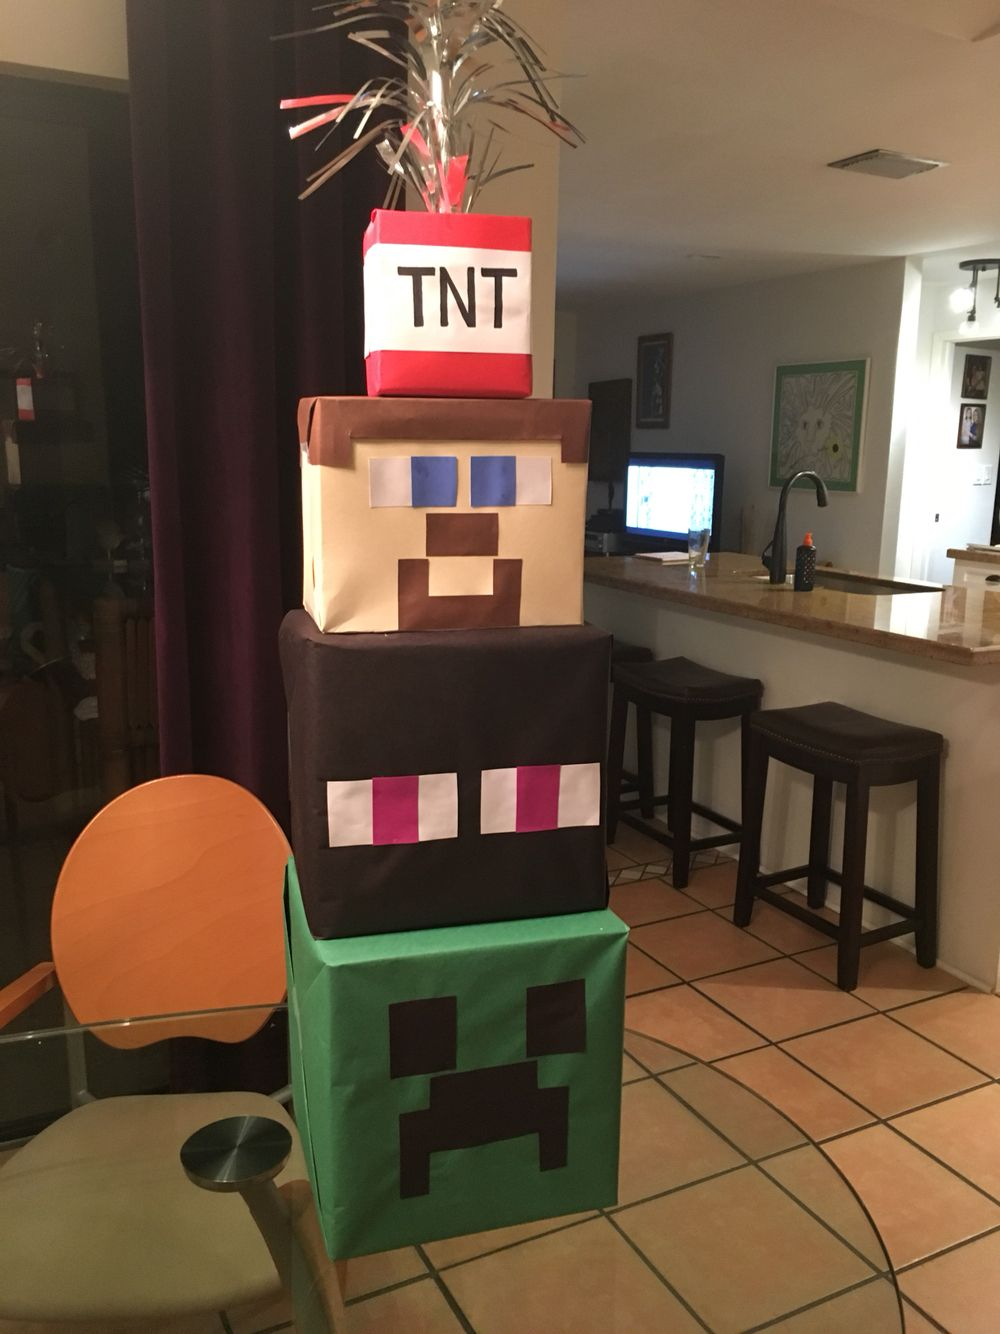 Minecraft Party Decorations Minecraft Party Decorations Diy Minecraft Party Pinterest